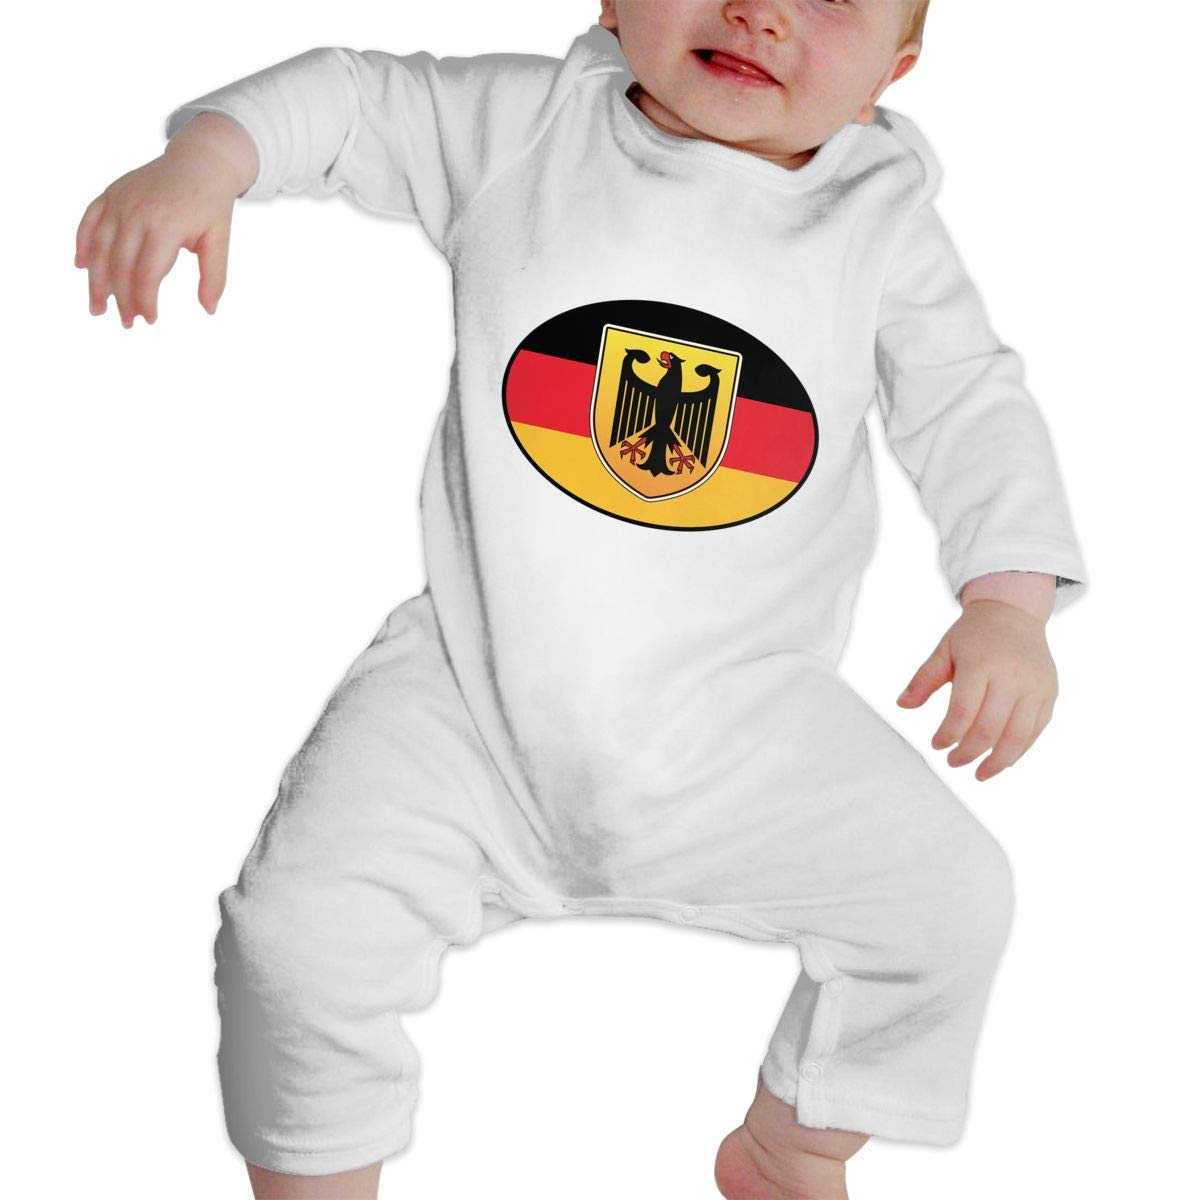 Fasenix Deutschland Germany Romper Jumpsuit Long Sleeve Bodysuit Overalls Outfits Clothes for Newborn Baby Boy Girl